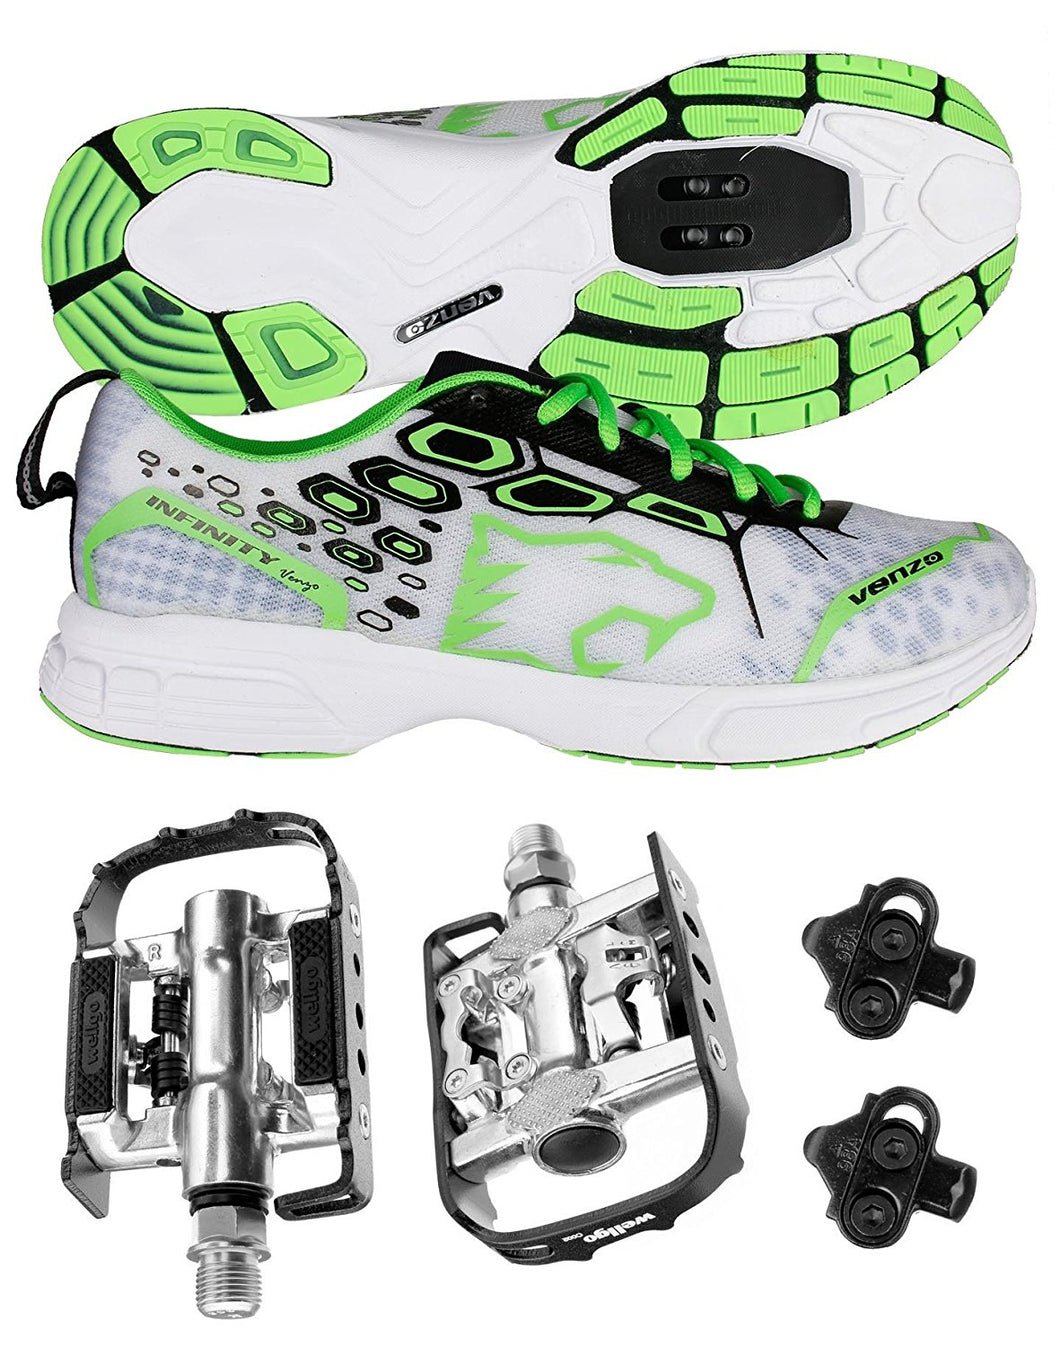 Venzo MTB Shimano SPD Shoes Green + Wellgo C002 Multi Pedals SMTB-GR